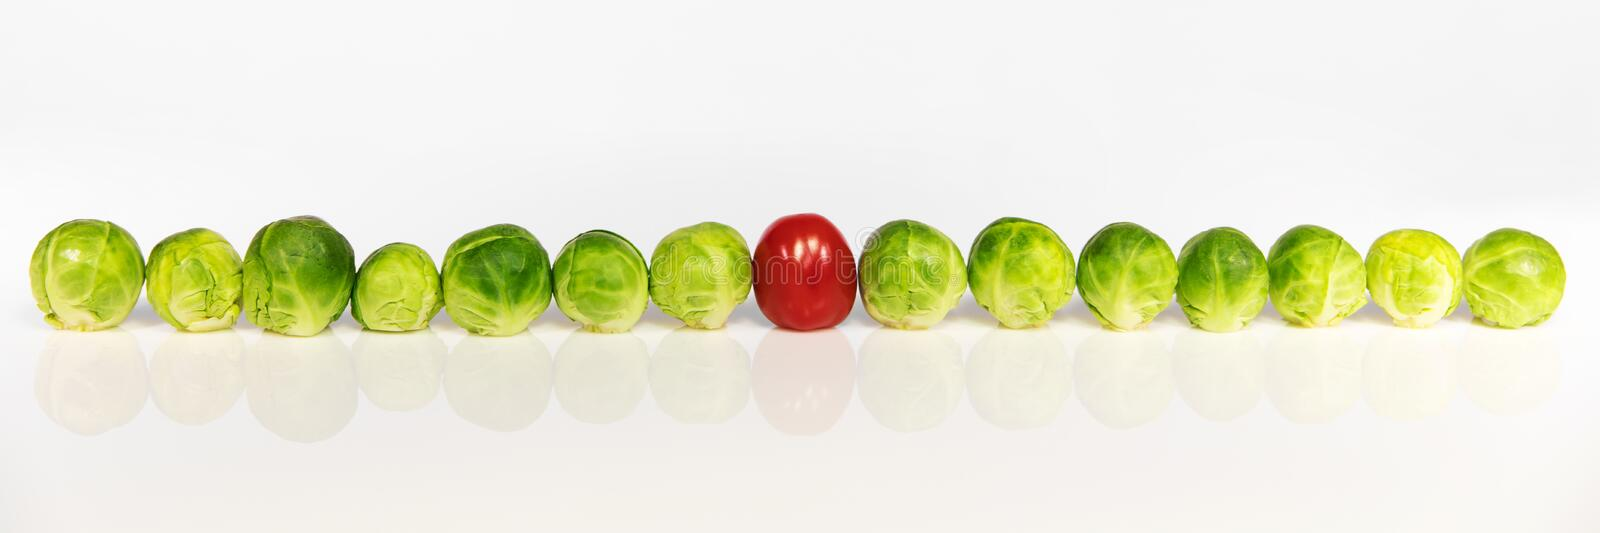 Brussel sprouts and tomato stock photos